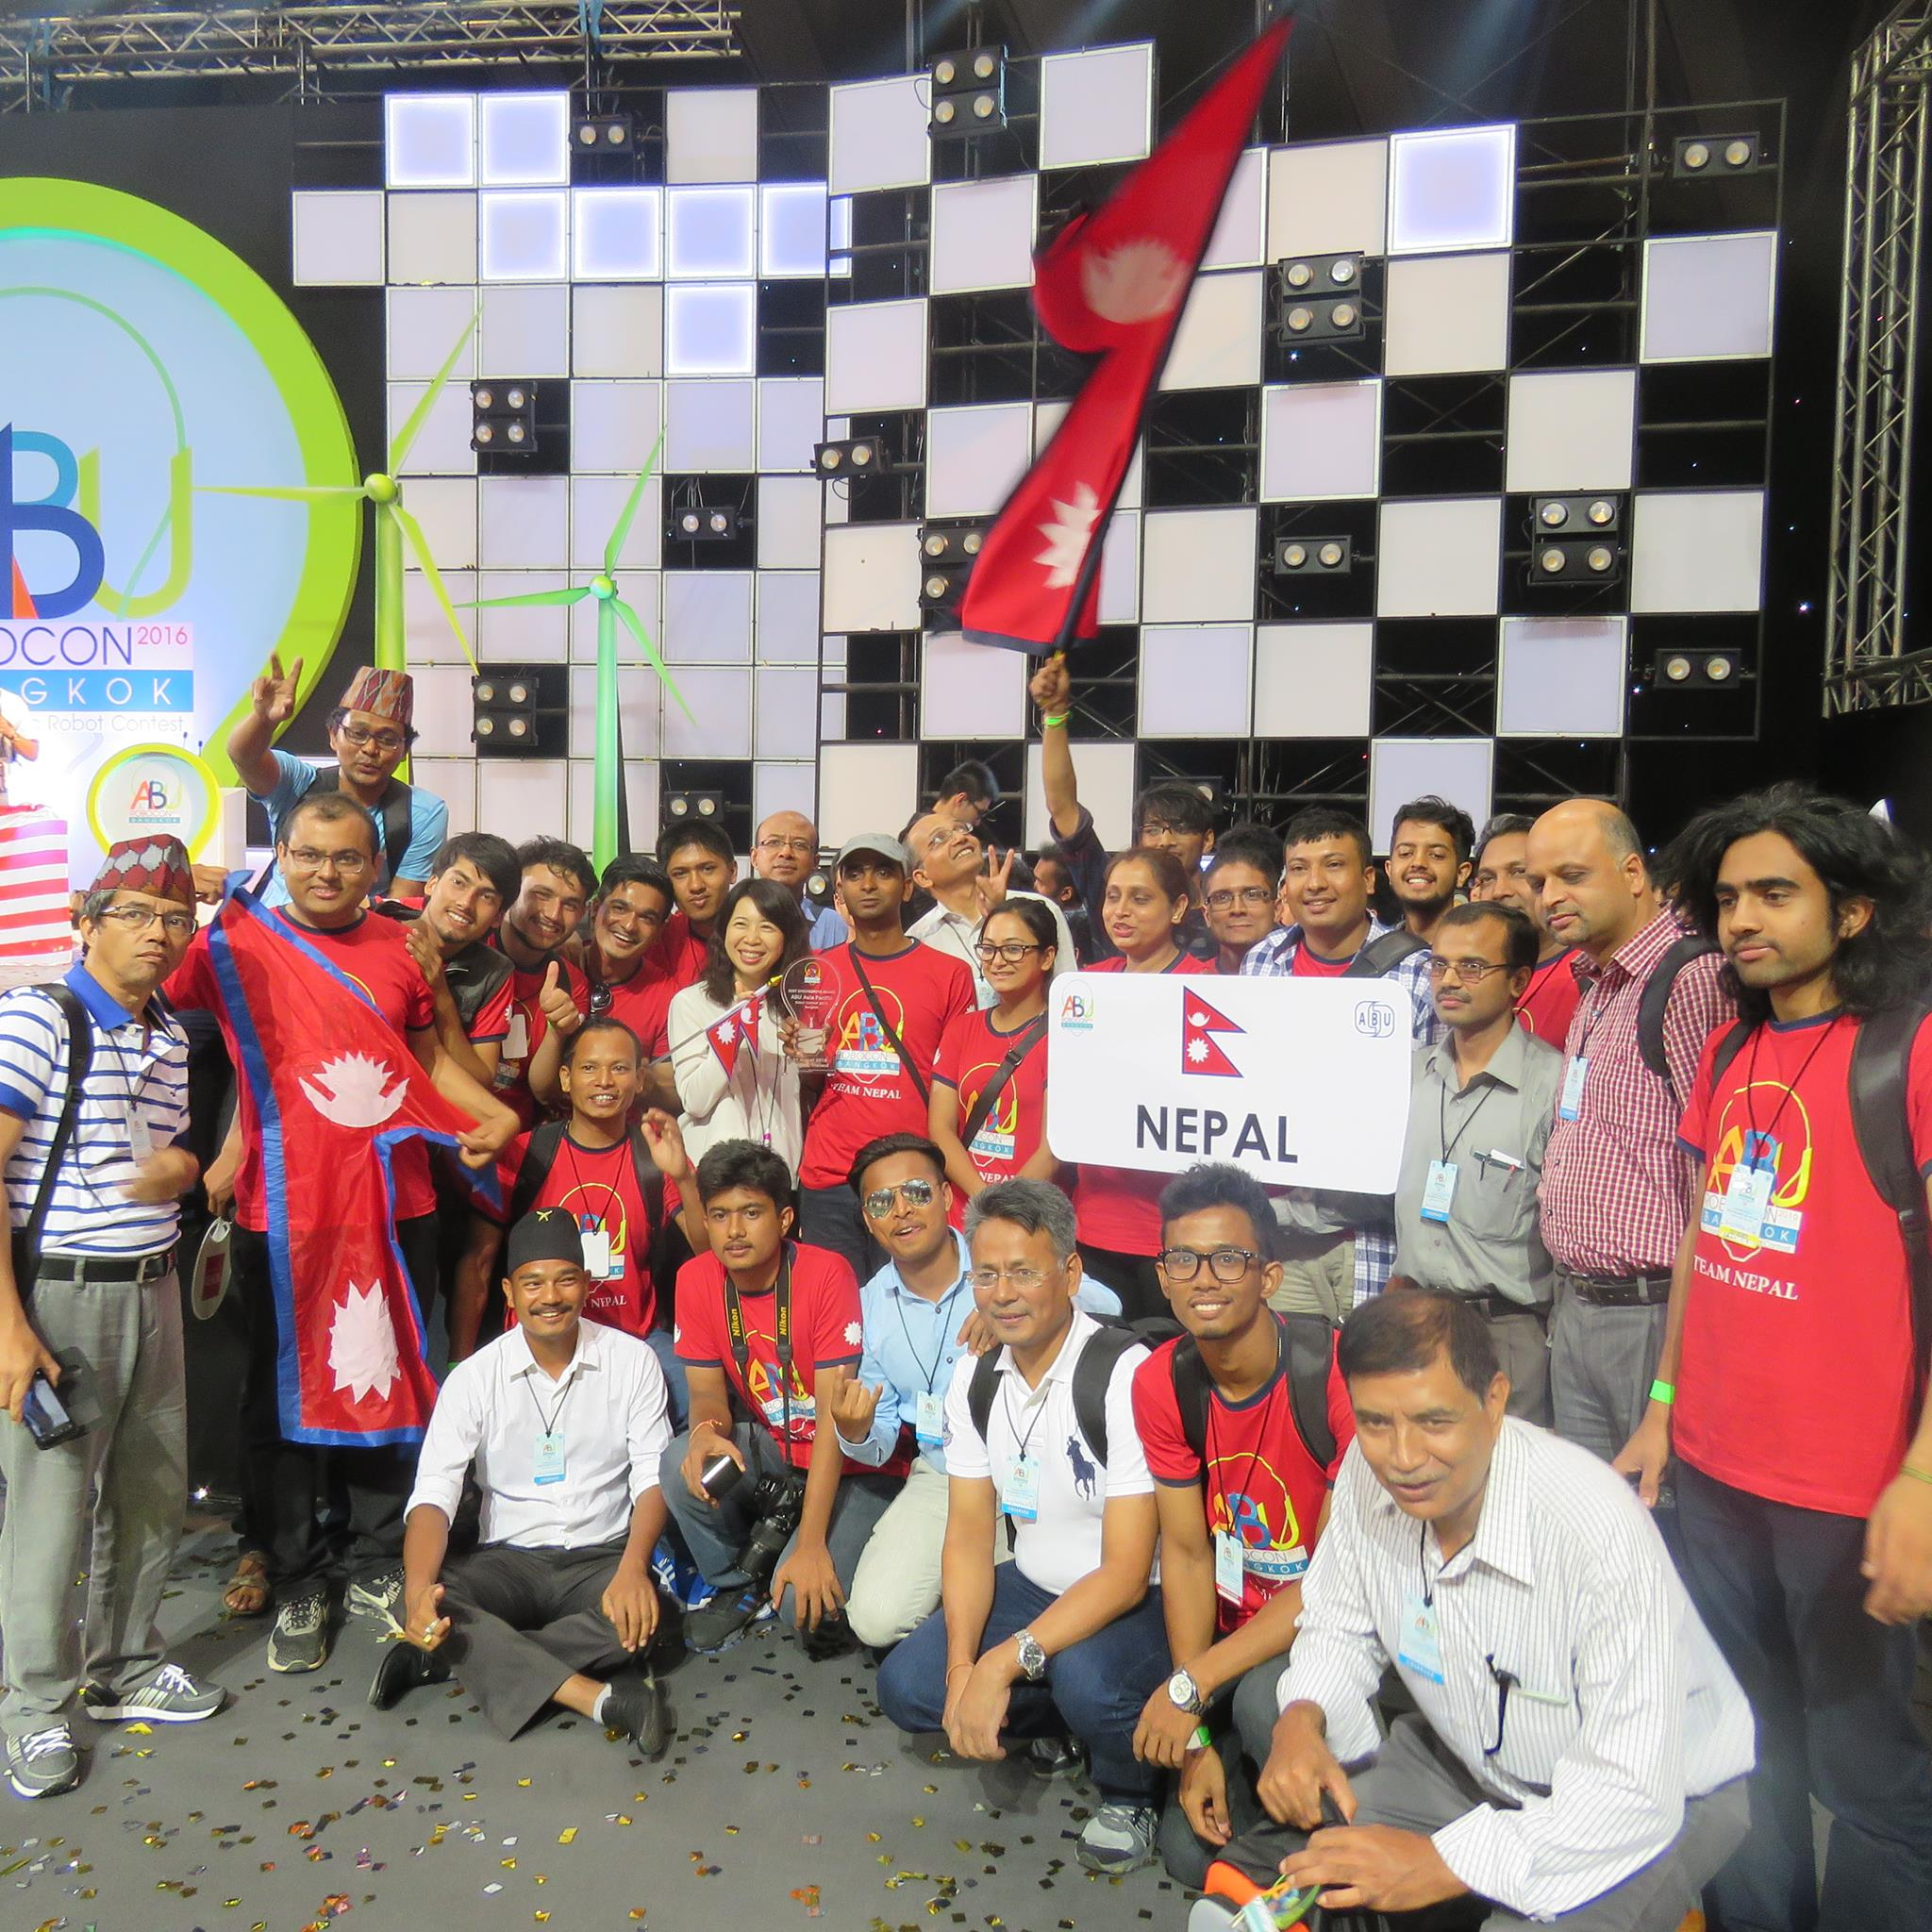 Team Nepal bags two awards in ABU Robocon 2016